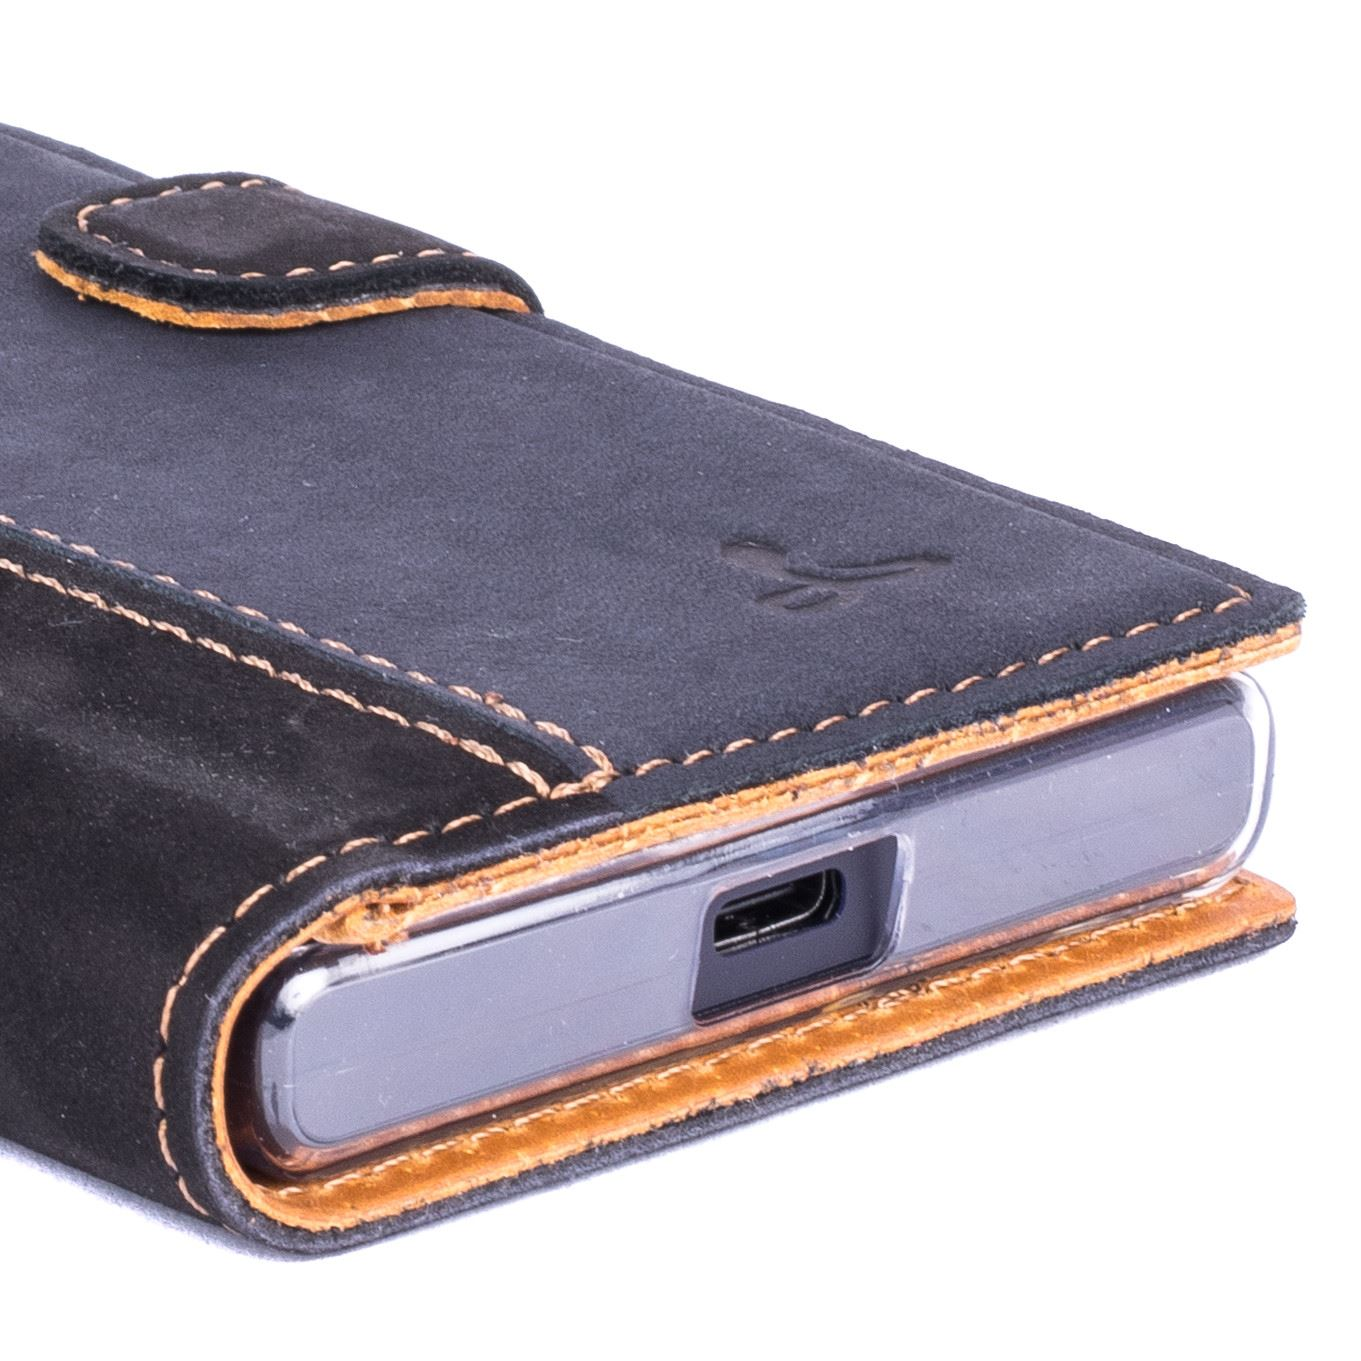 reputable site 1702c 91f9a Details about SNAKEHIVE® Vintage Nubuck Leather Wallet Case Cover for Sony  Xperia X Compact